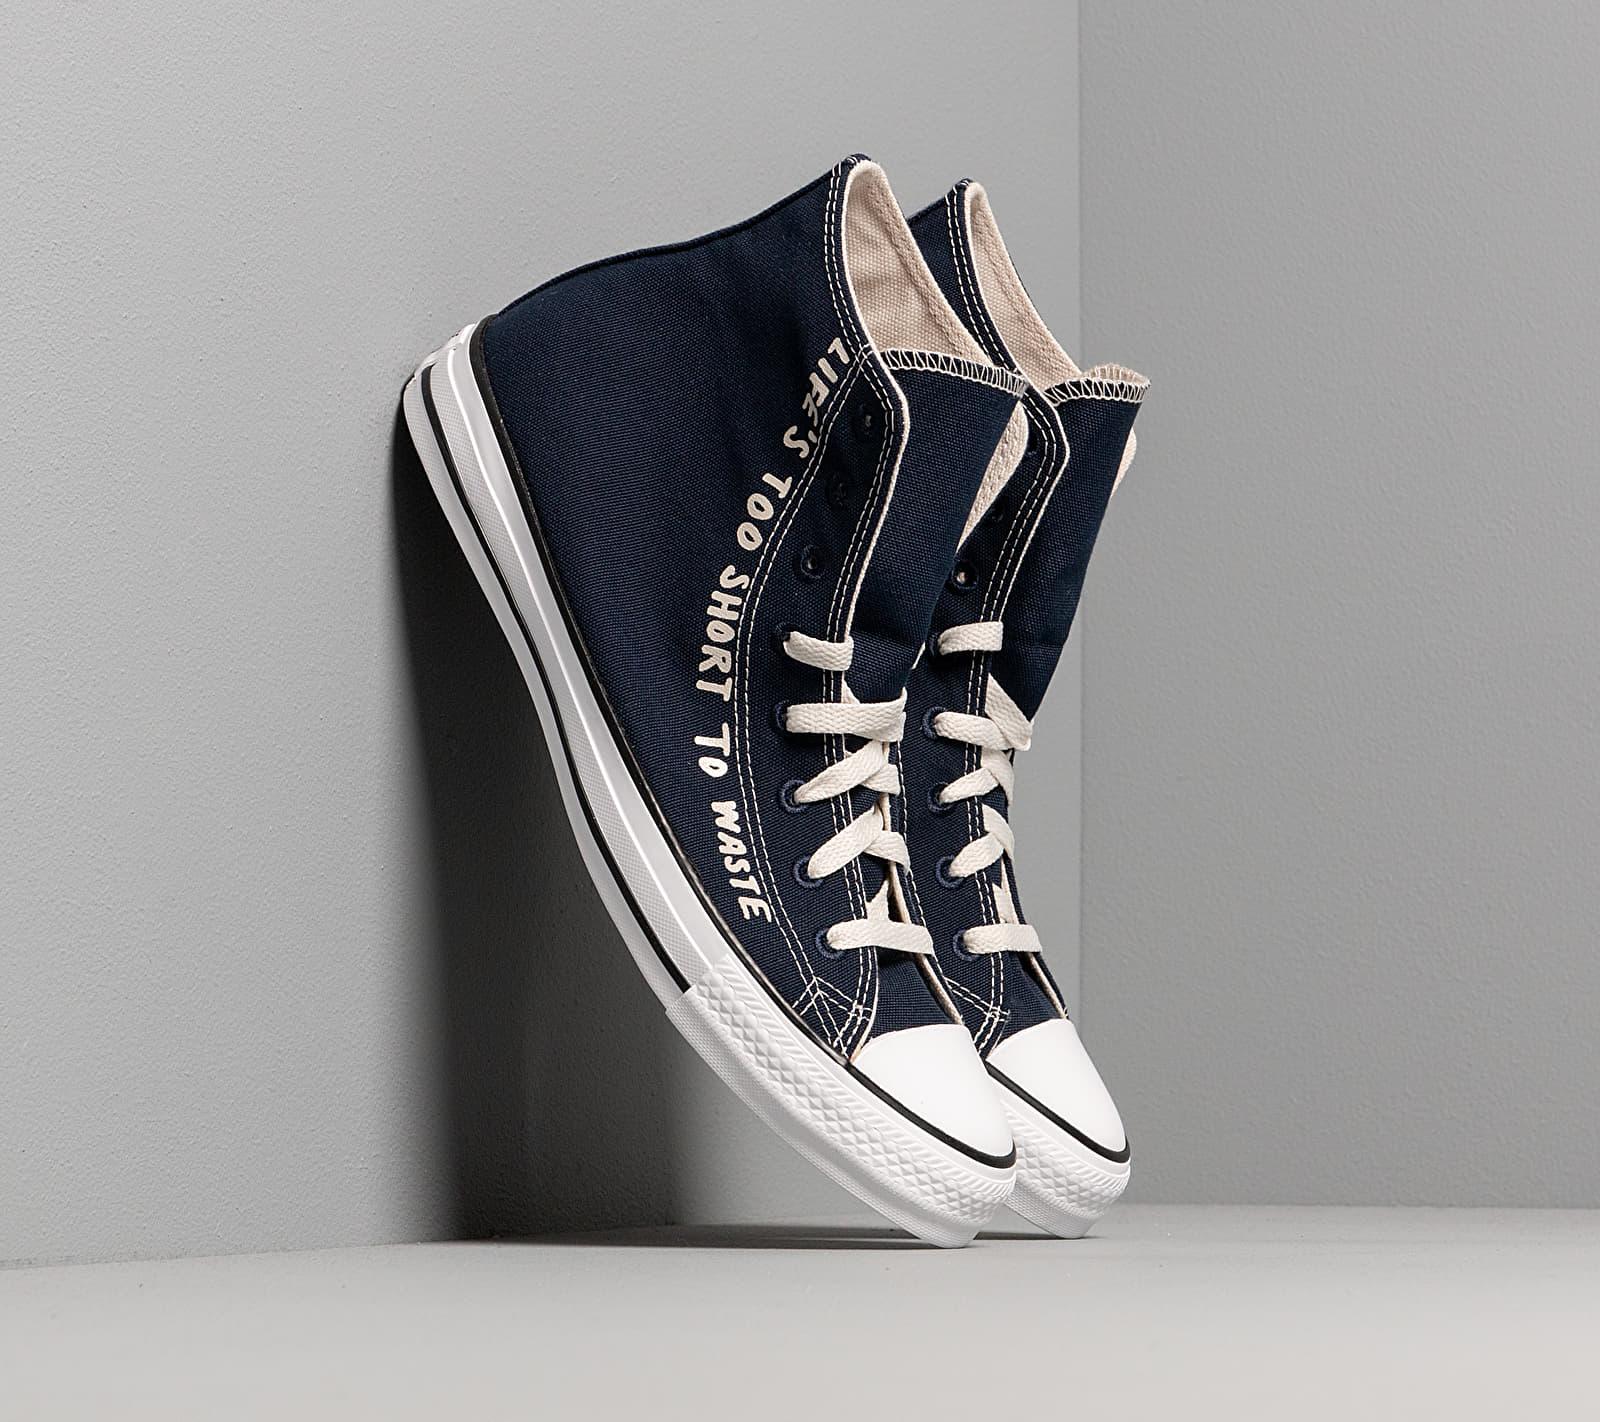 Converse Chuck Taylor All Star Hi Renew Obsidian/ Egret/ White, Blue